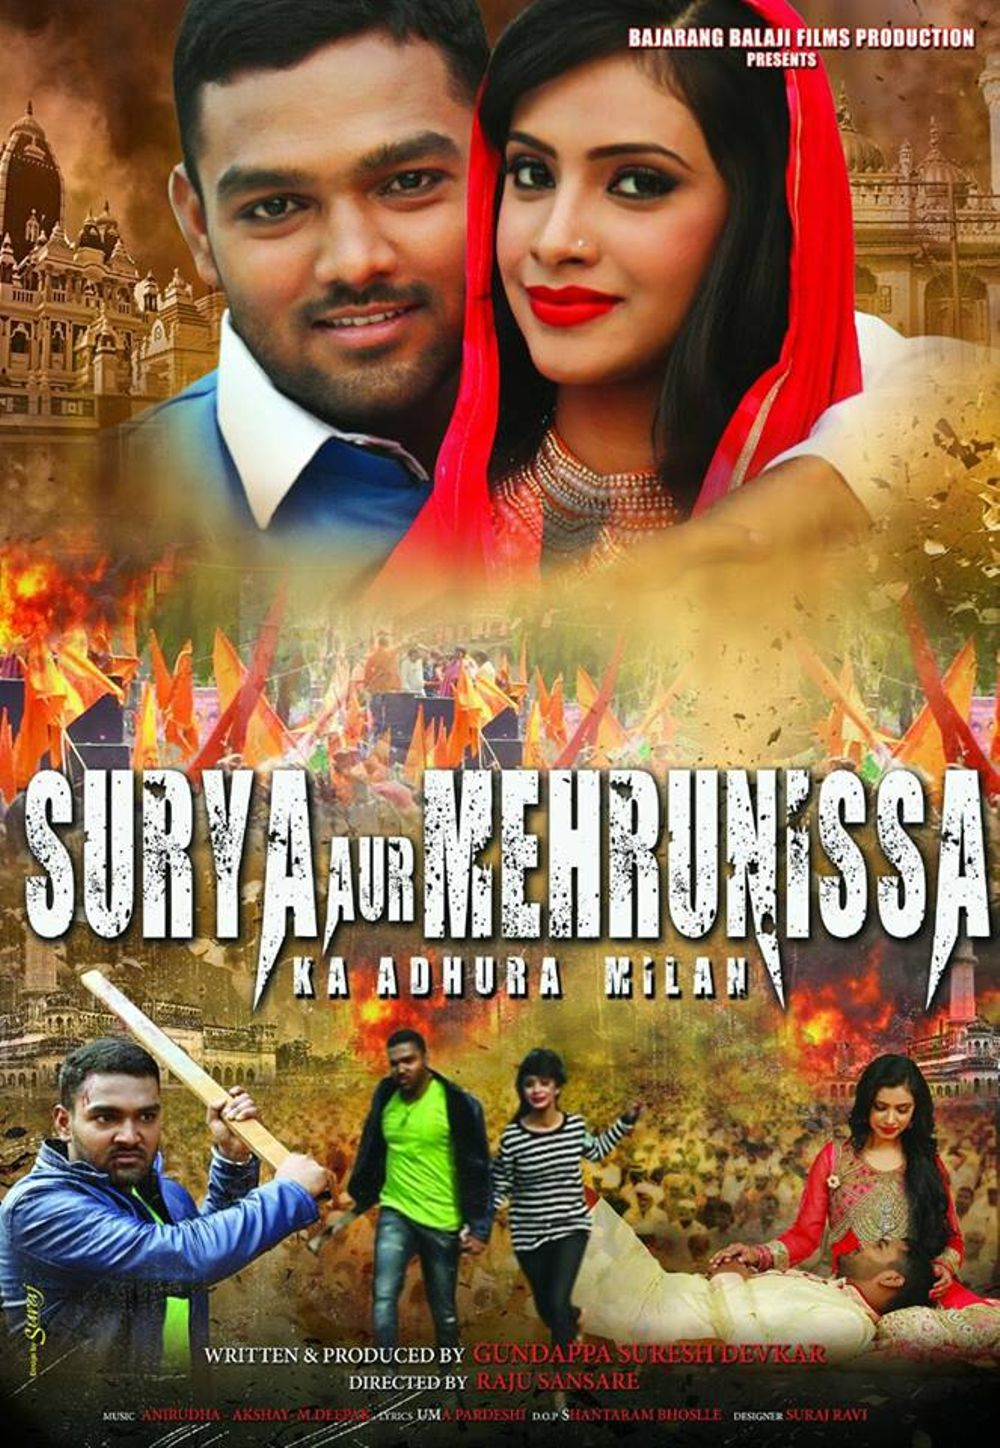 Surya Aur Mehrunissa Ka Adhura Milan Movie Review Hindi Movie Review